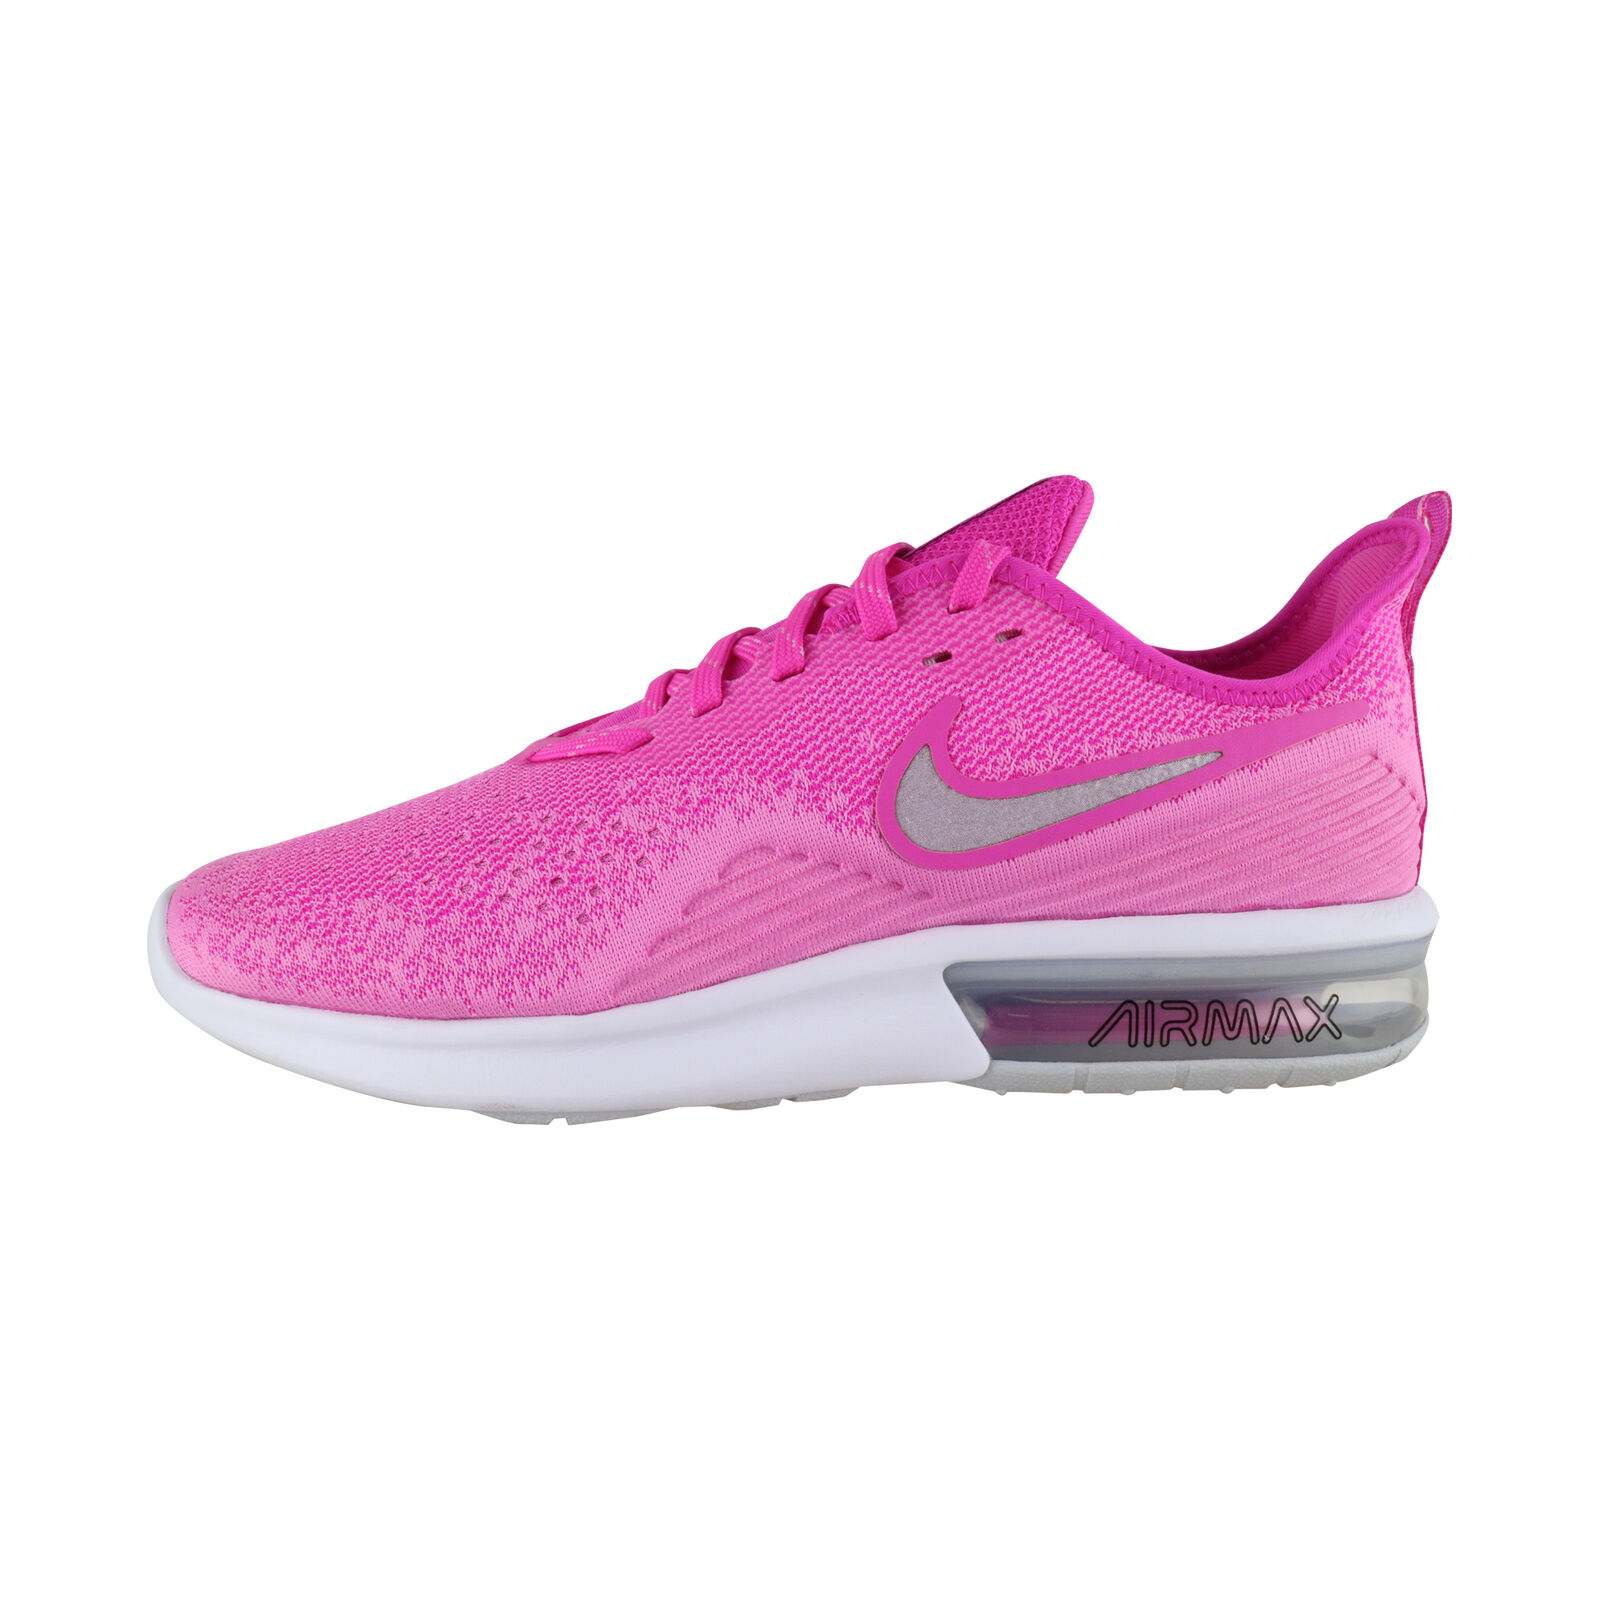 Nike Air Max Sequent 4 Women Pink White AO4486-601